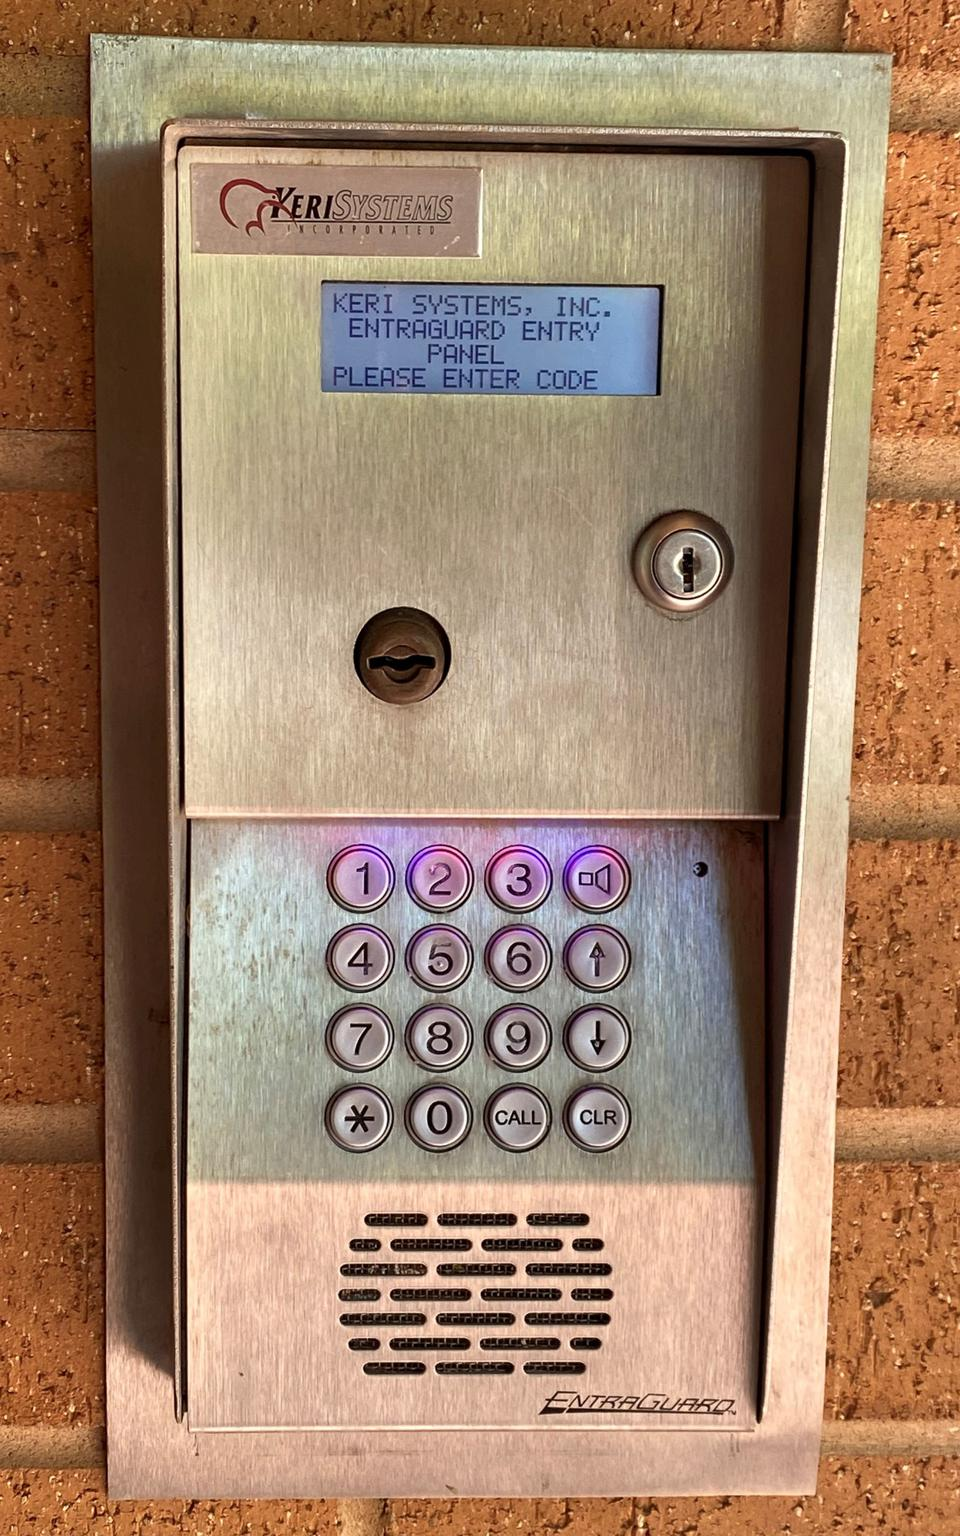 An access control system that can be easily compromised because of the low-security lock